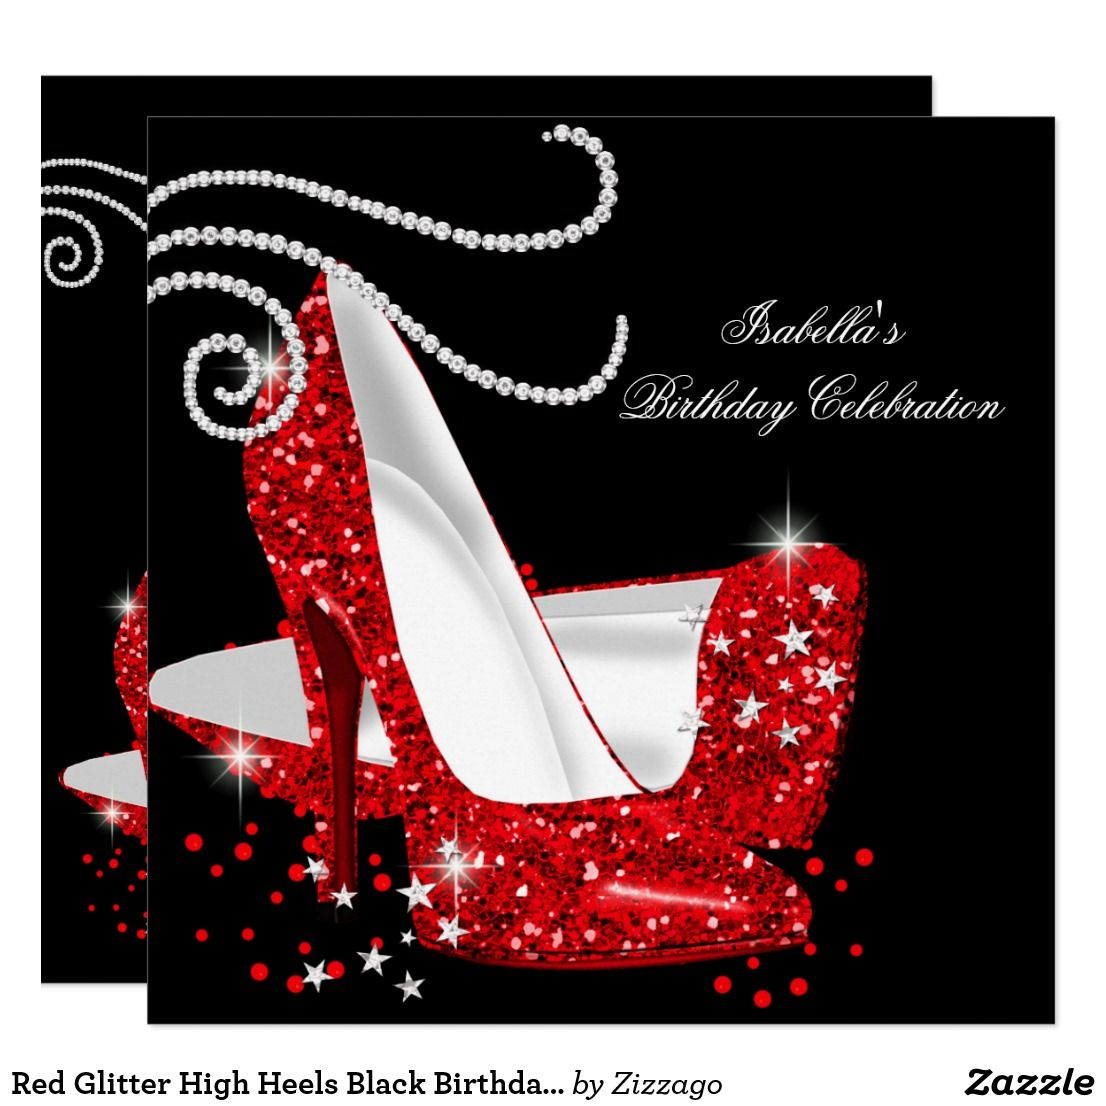 c5c5f2cb532a Red Glitter High Heels Black Birthday Party Card Any Age. Luxury Red  Glitter High Heels Shoes Stiletto